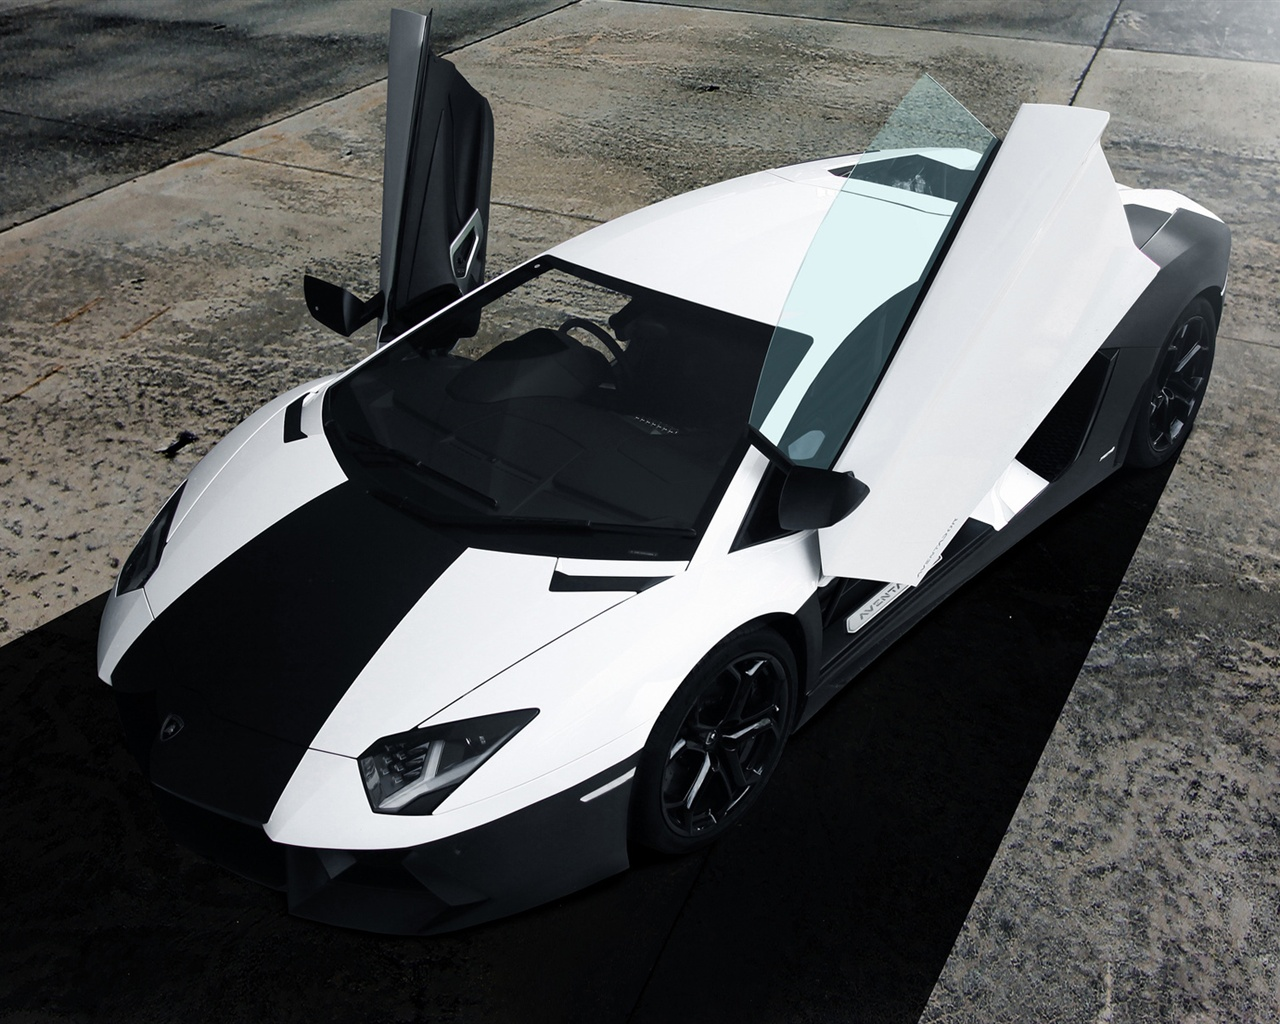 fonds d 39 cran lamborghini aventador noir blanc couleurs supercar 1920x1200 hd image. Black Bedroom Furniture Sets. Home Design Ideas